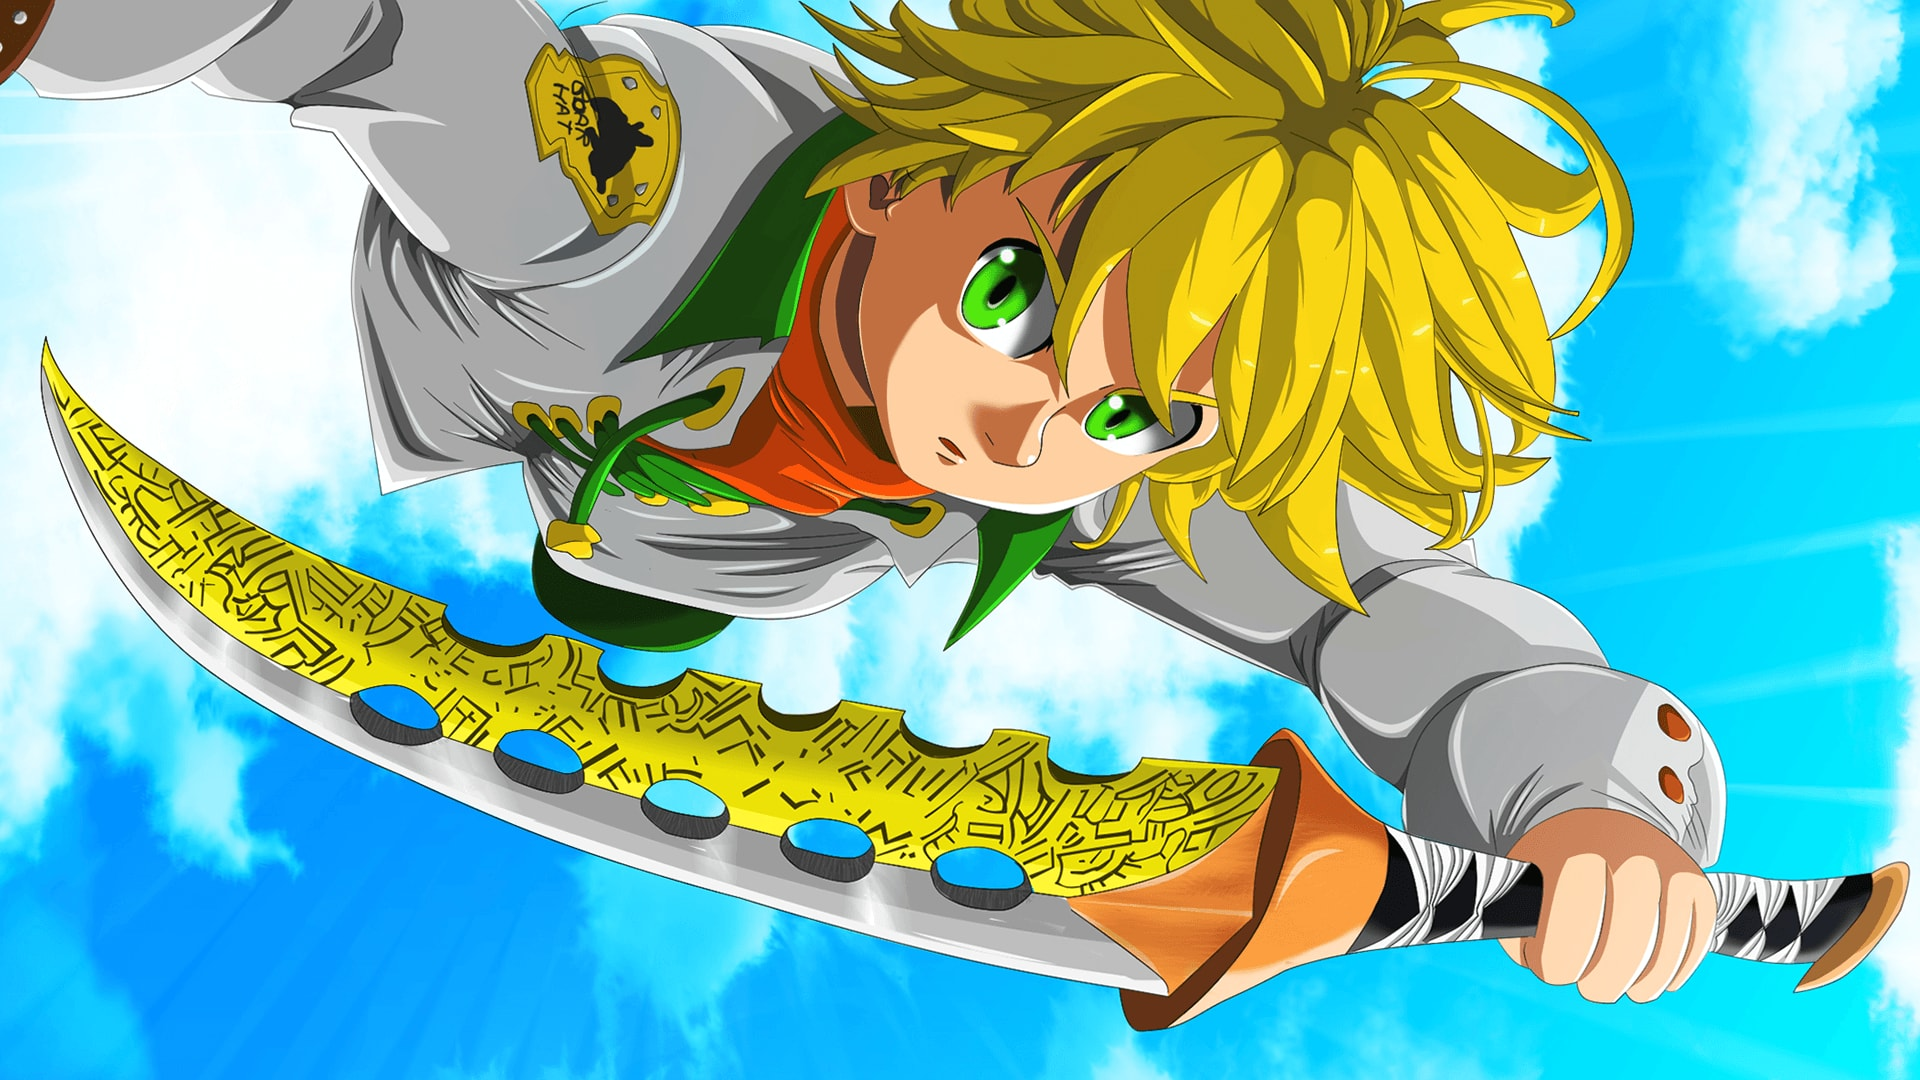 Wallpaper Of Meliodas The Seven Deadly Sins Background Hd Image